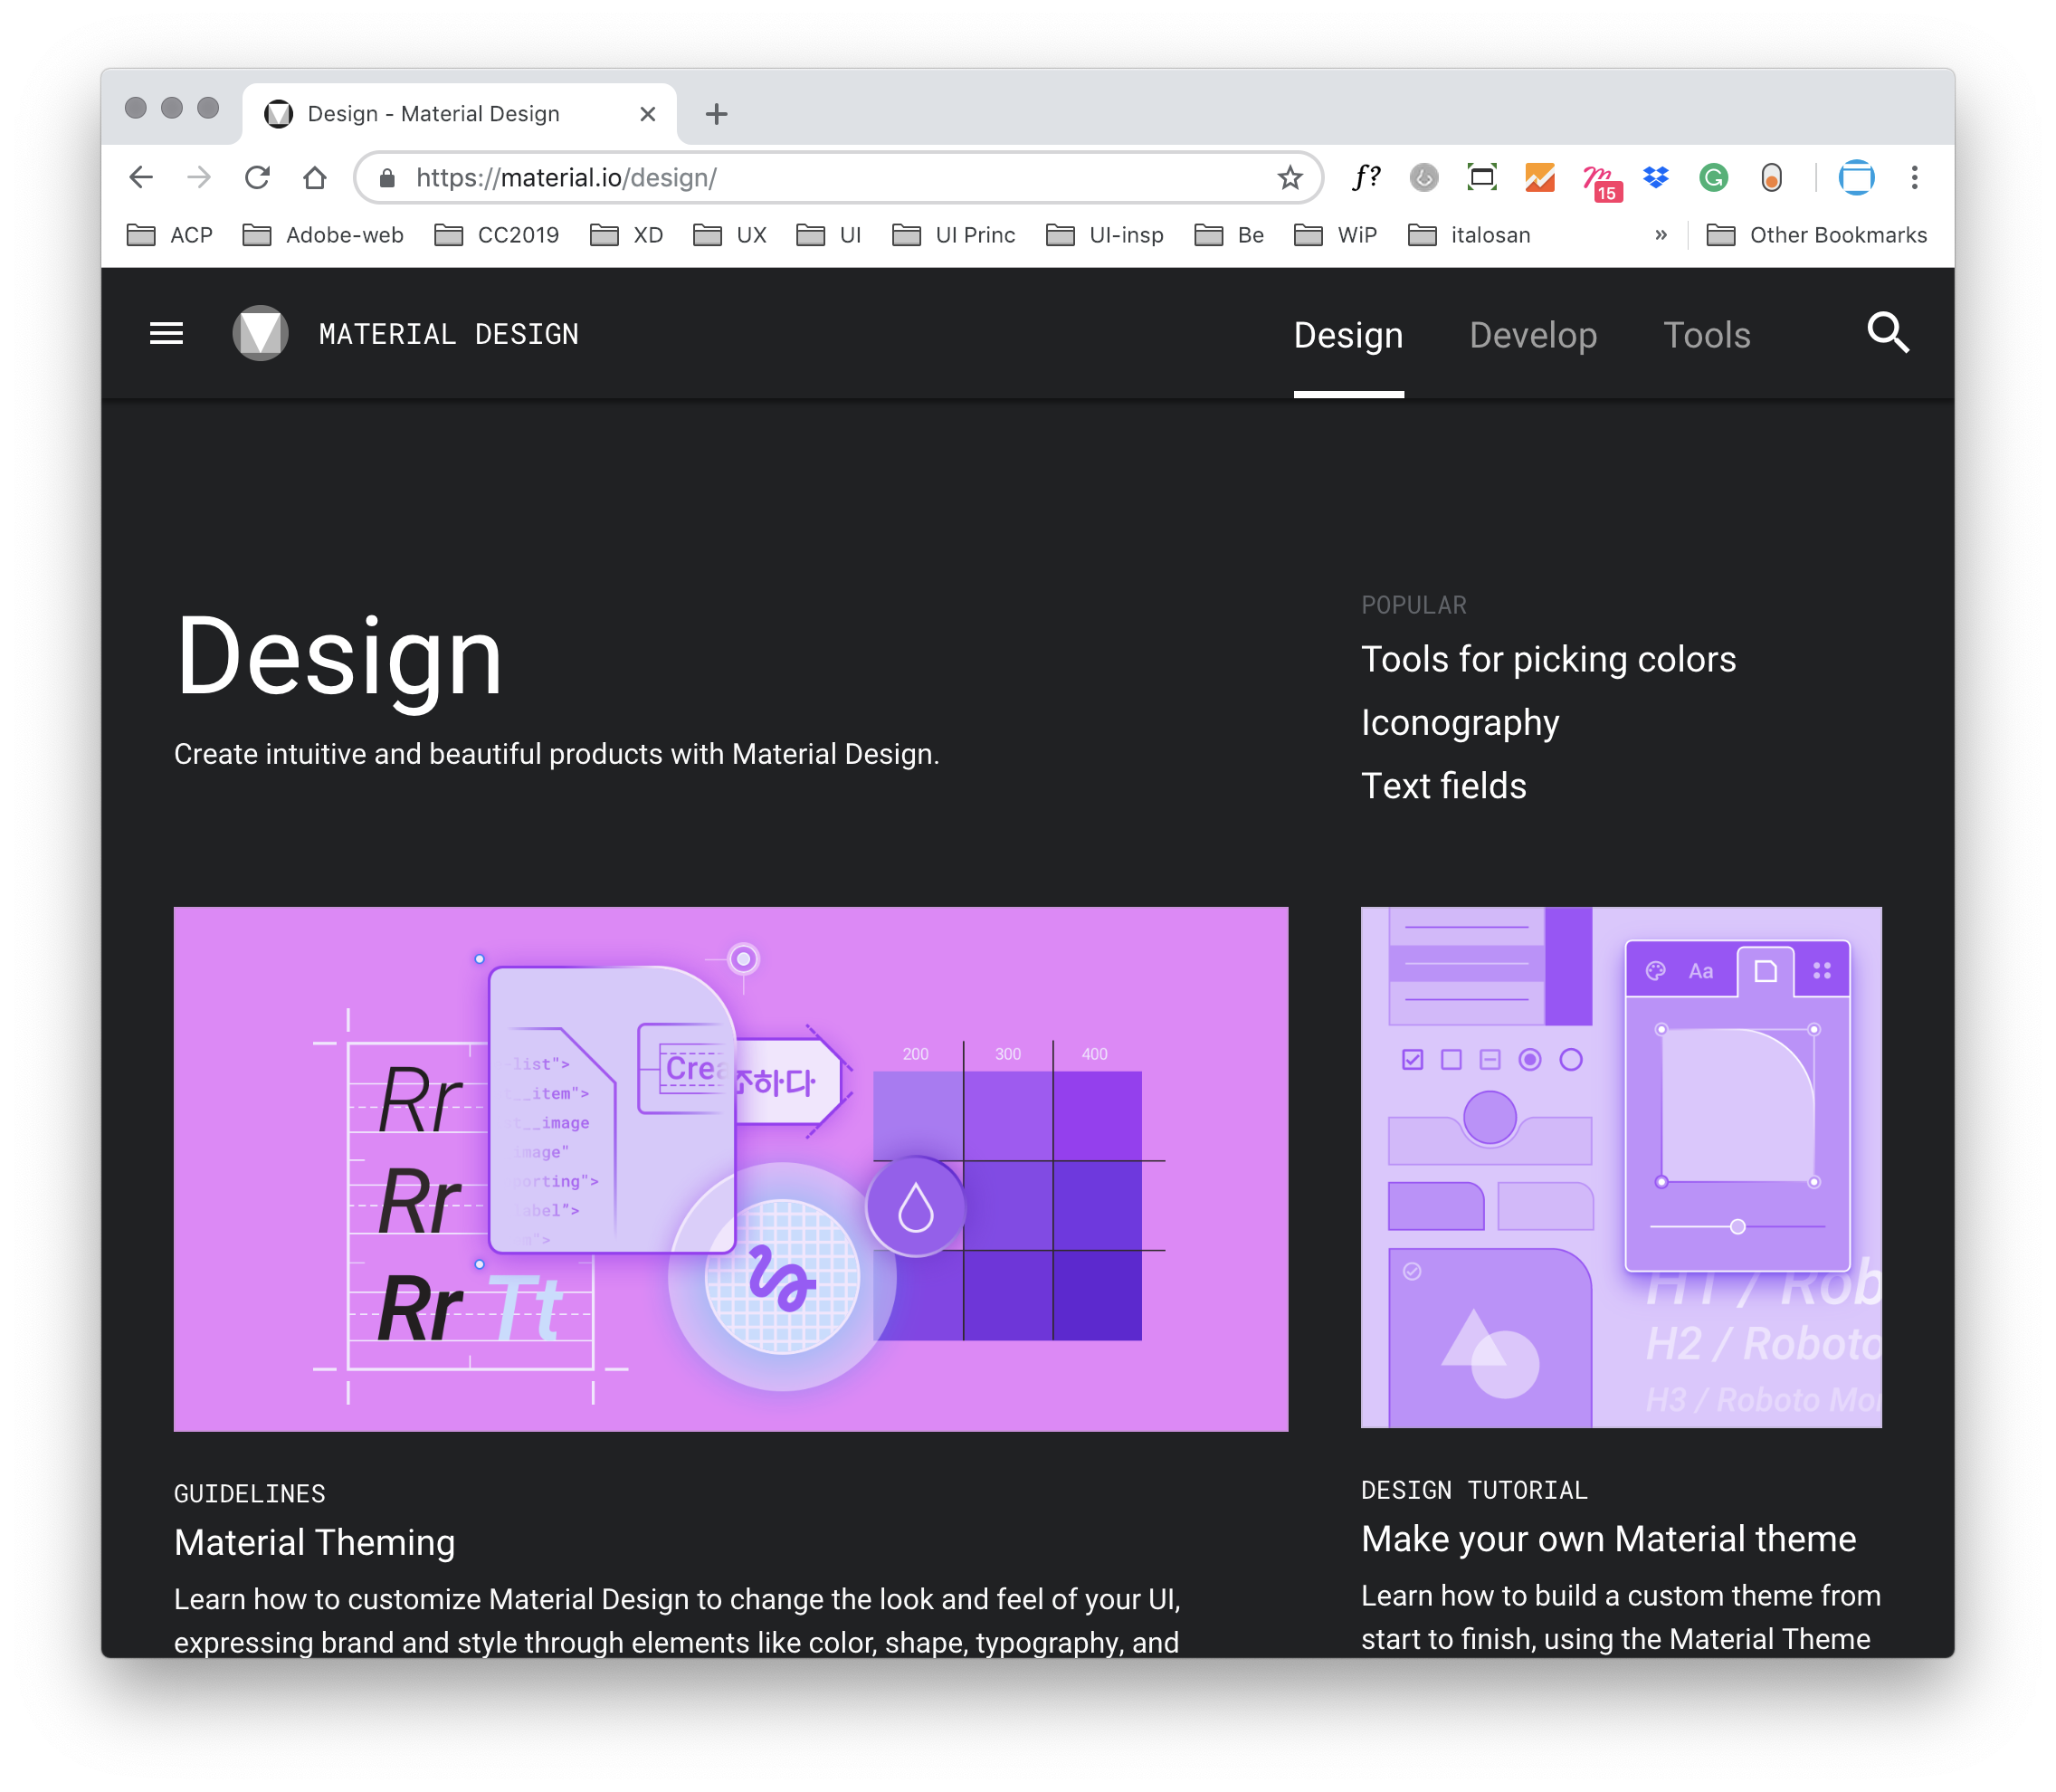 The Google Material section dedicated to the design